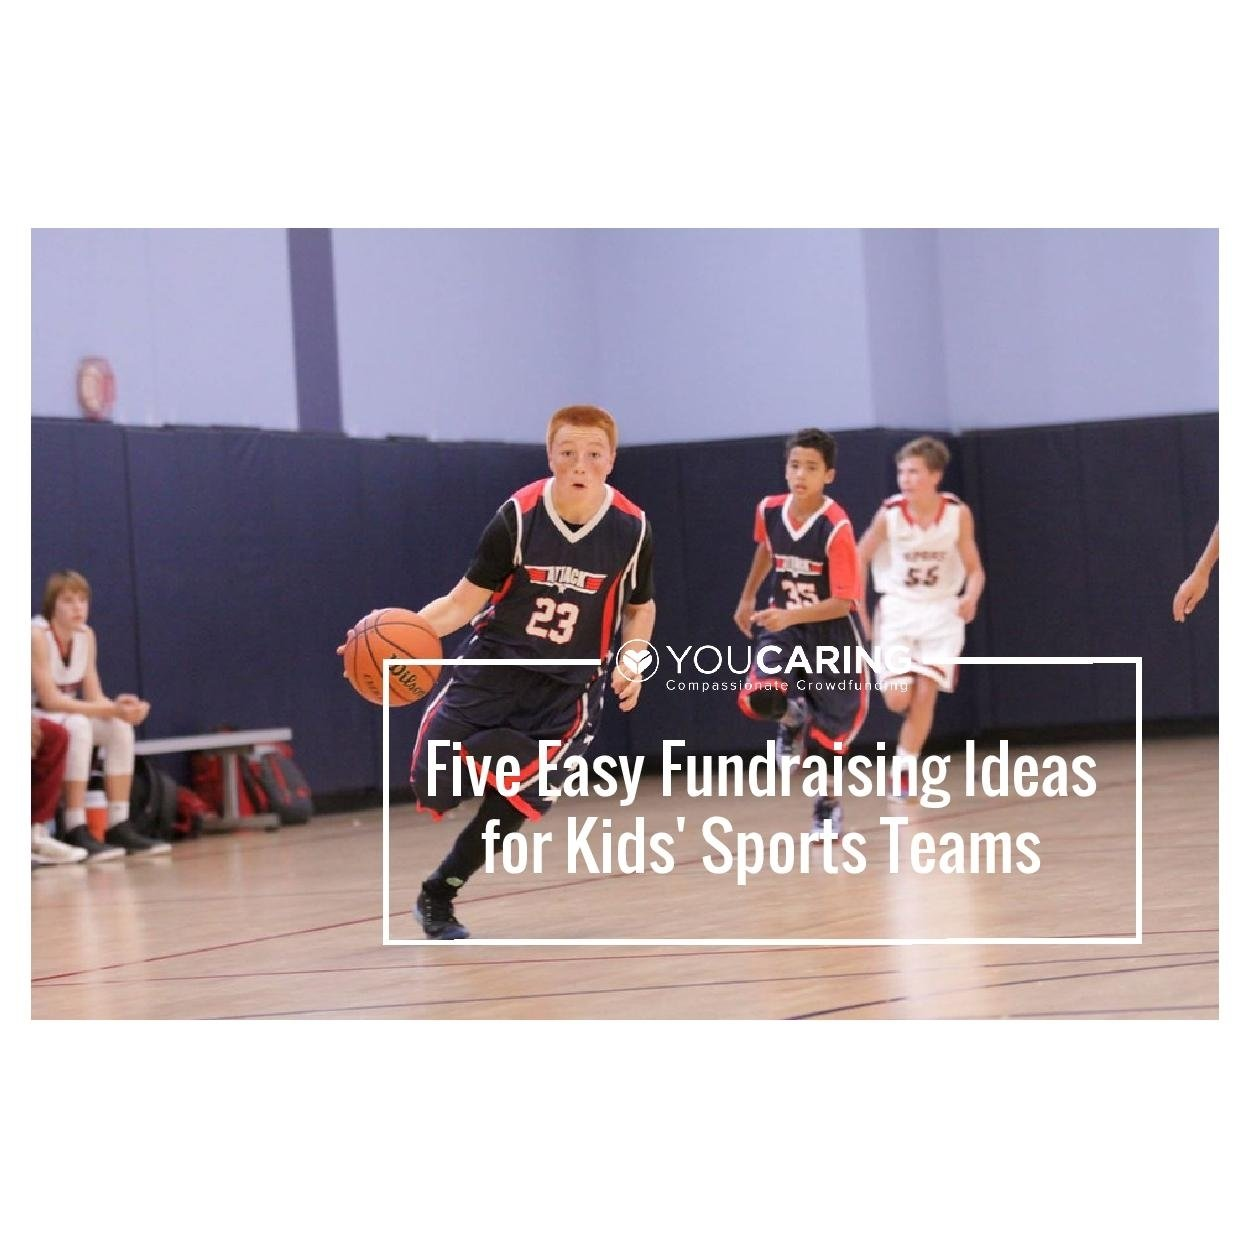 10 Amazing Easy Fundraising Ideas For Sports Teams five easy fundraising ideas for kids sports teams compassionate 4 2020